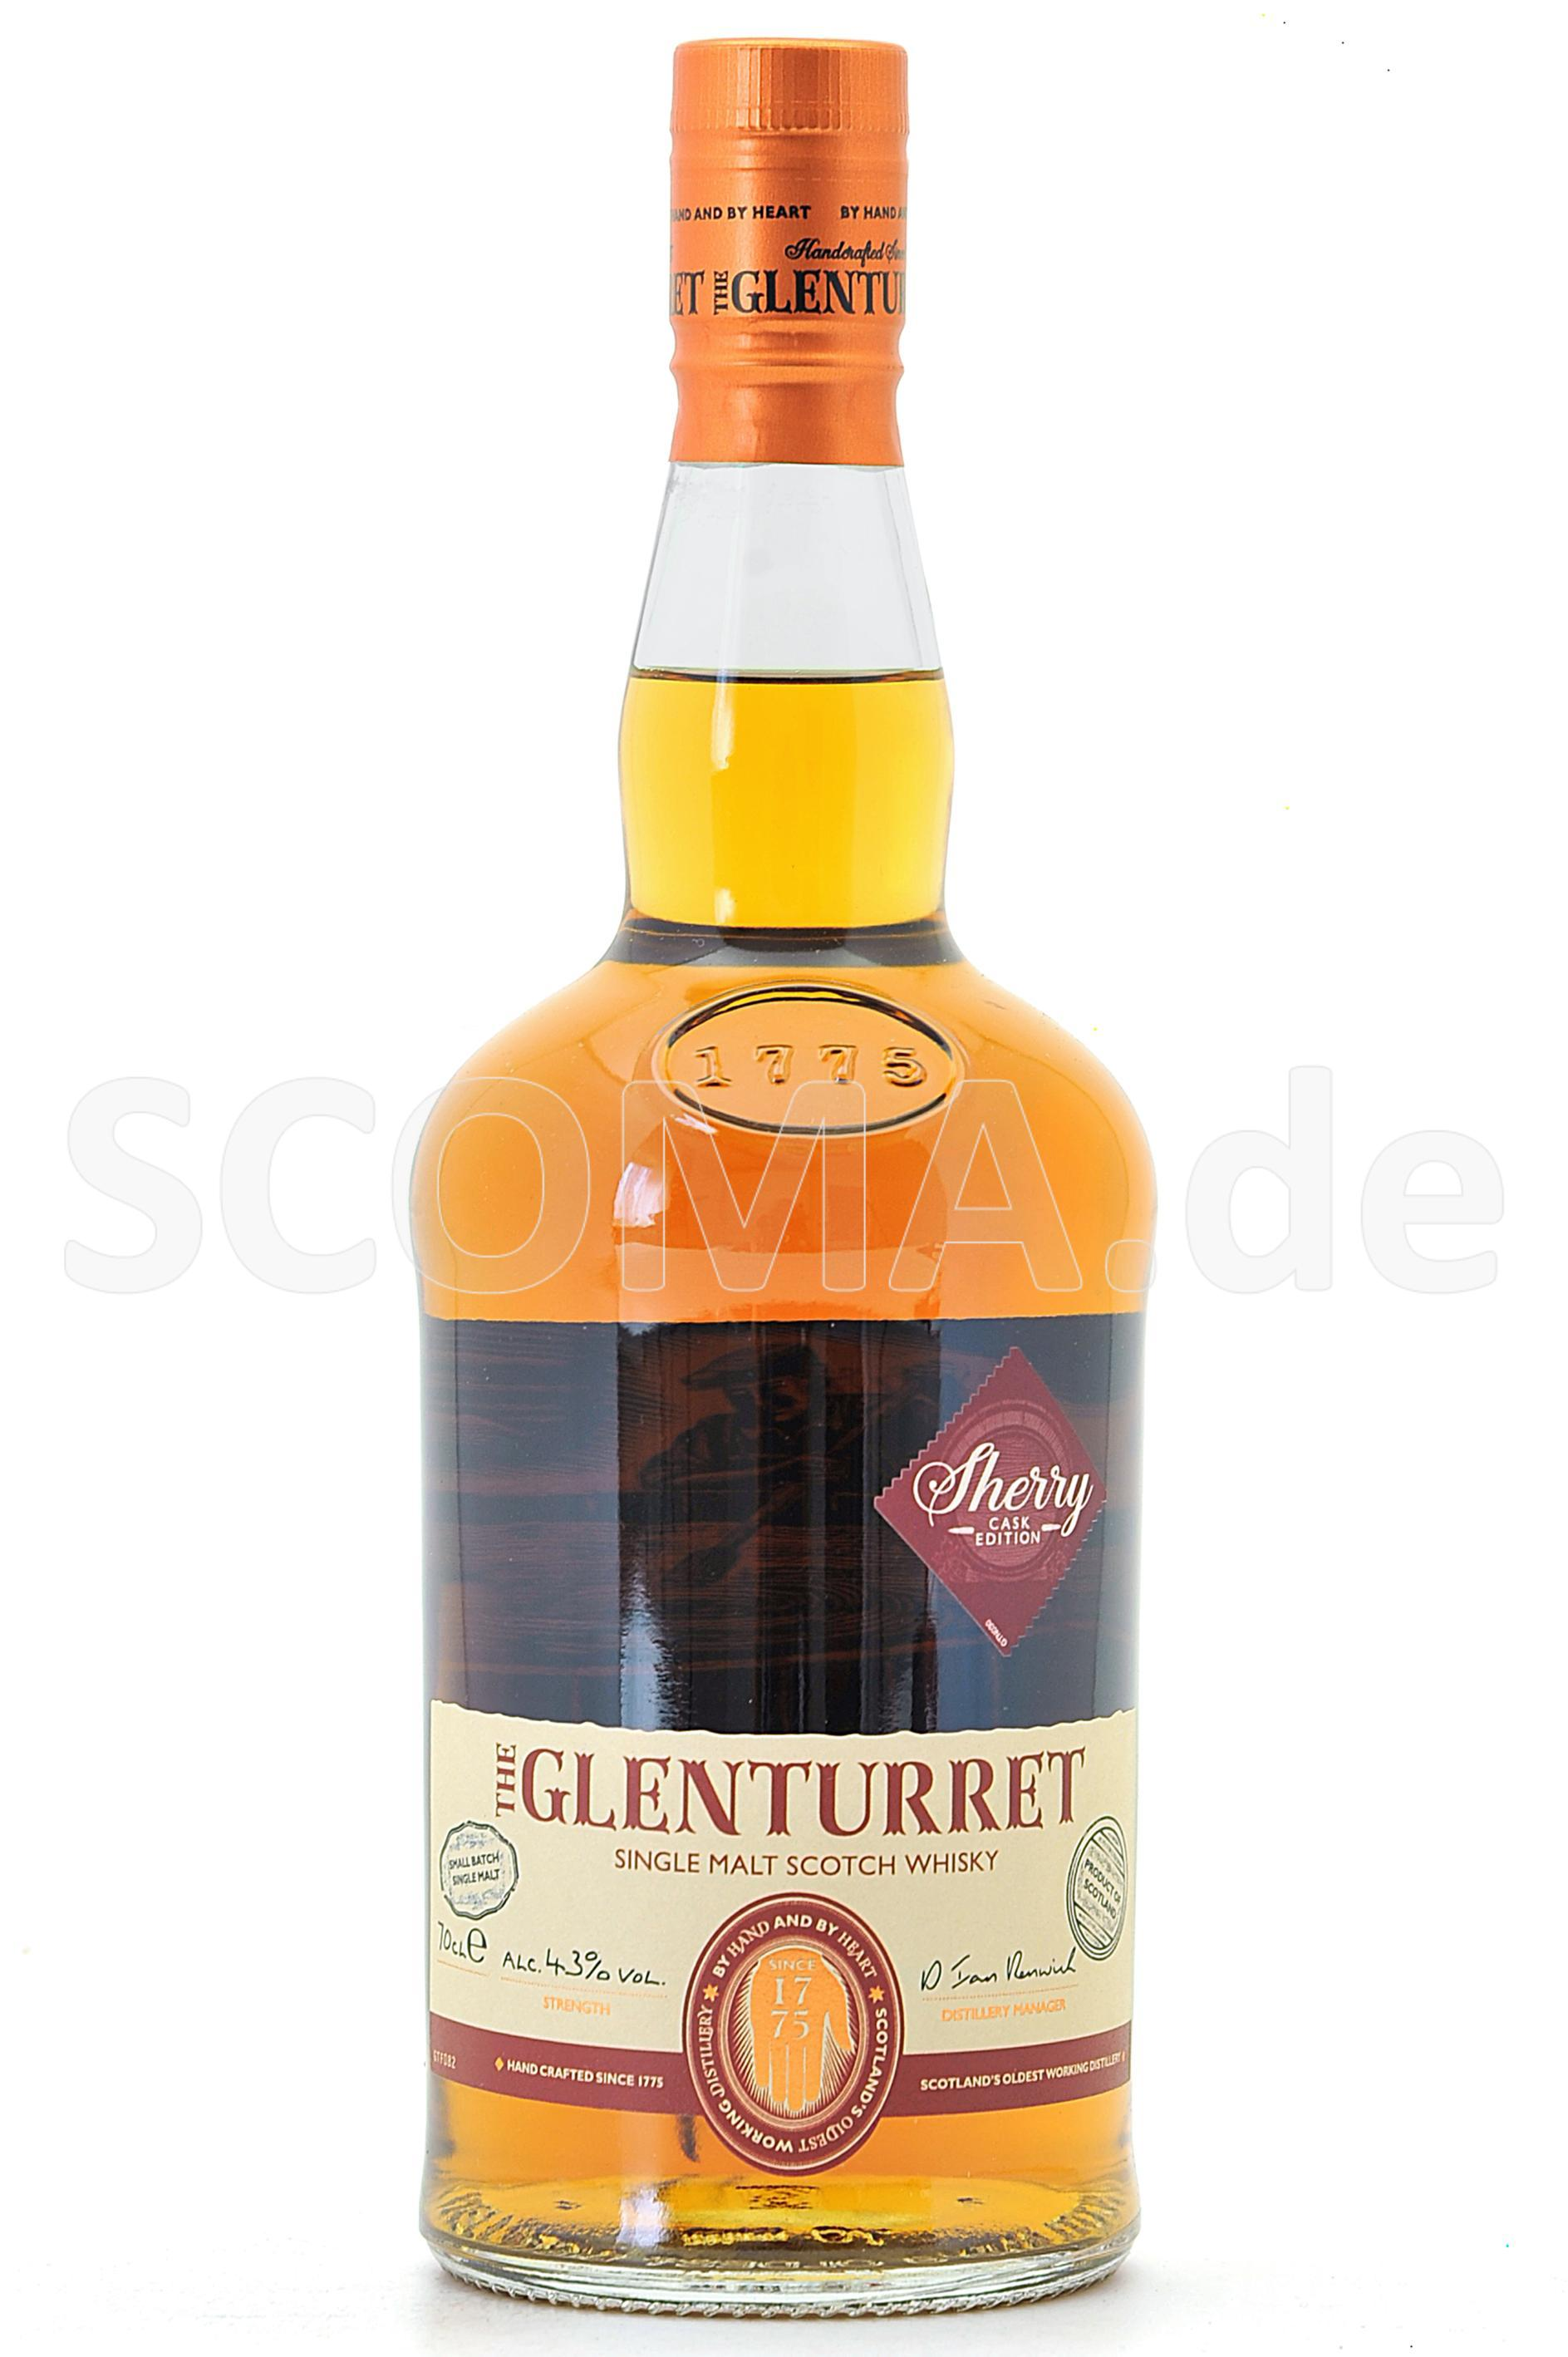 Glenturret Sherry Cask